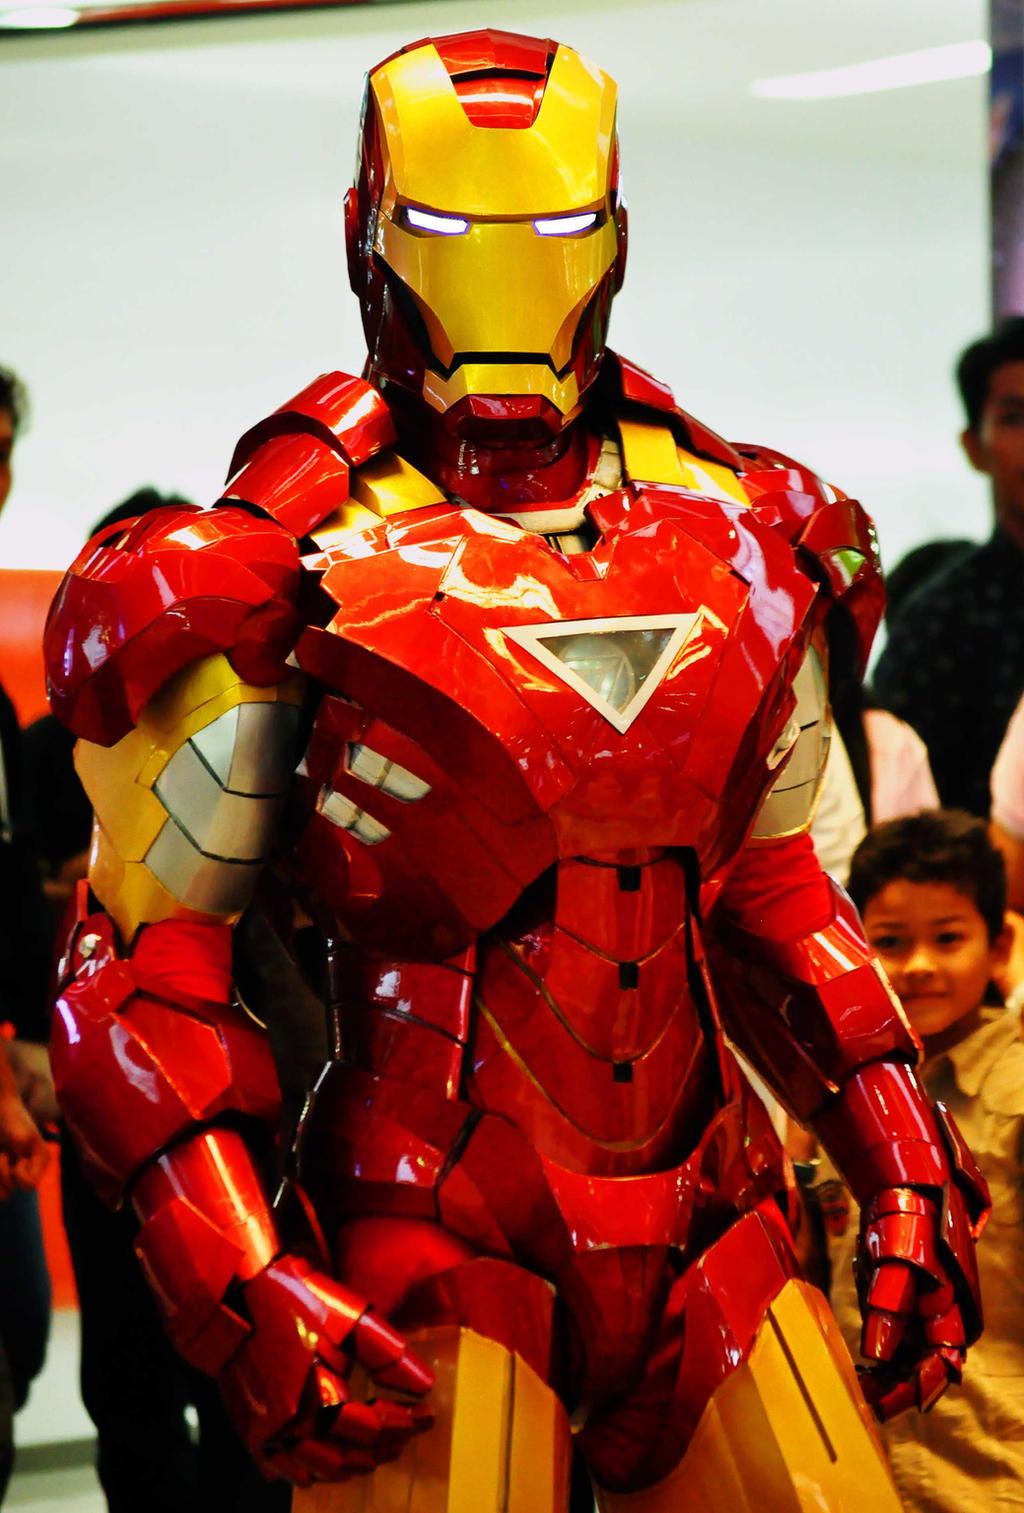 Iron Man 2 Hot Toys Mark VI Iron Man 16 Scale Movie Masterpiece Collectible Figure Review